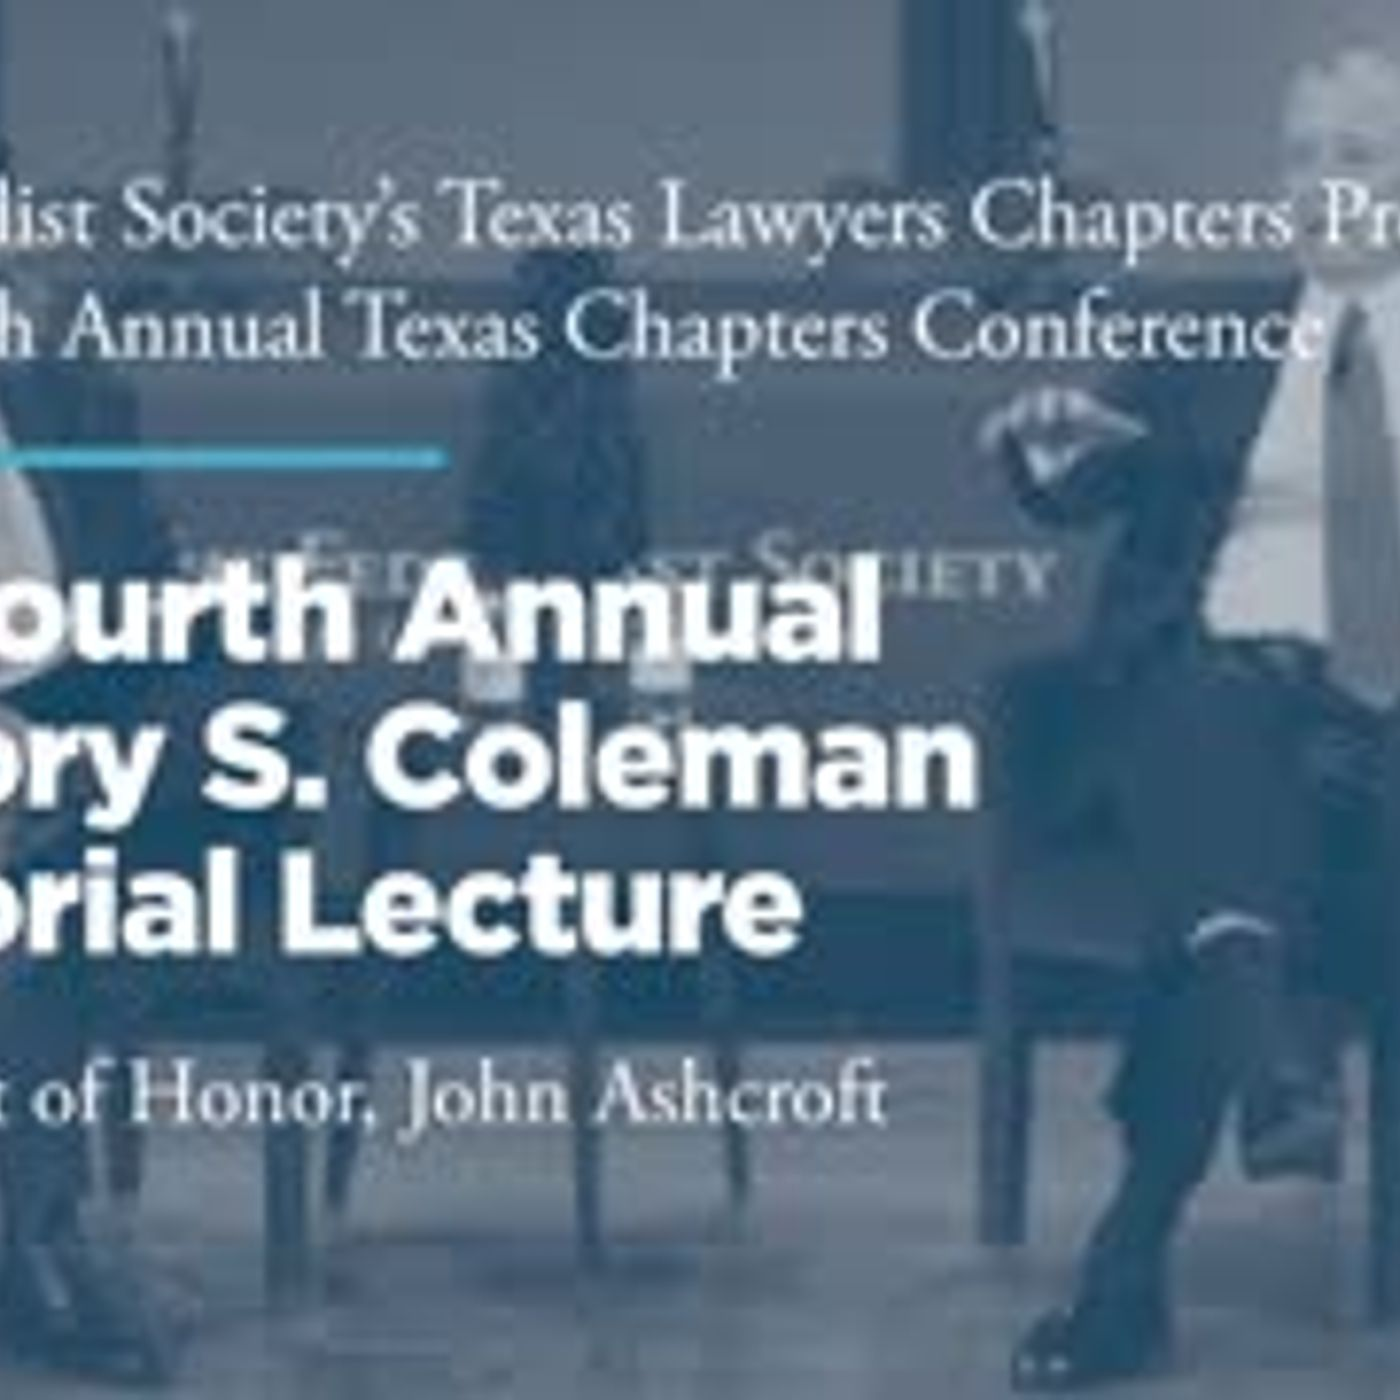 Fourth Annual Gregory S. Coleman Memorial Lecture & Luncheon